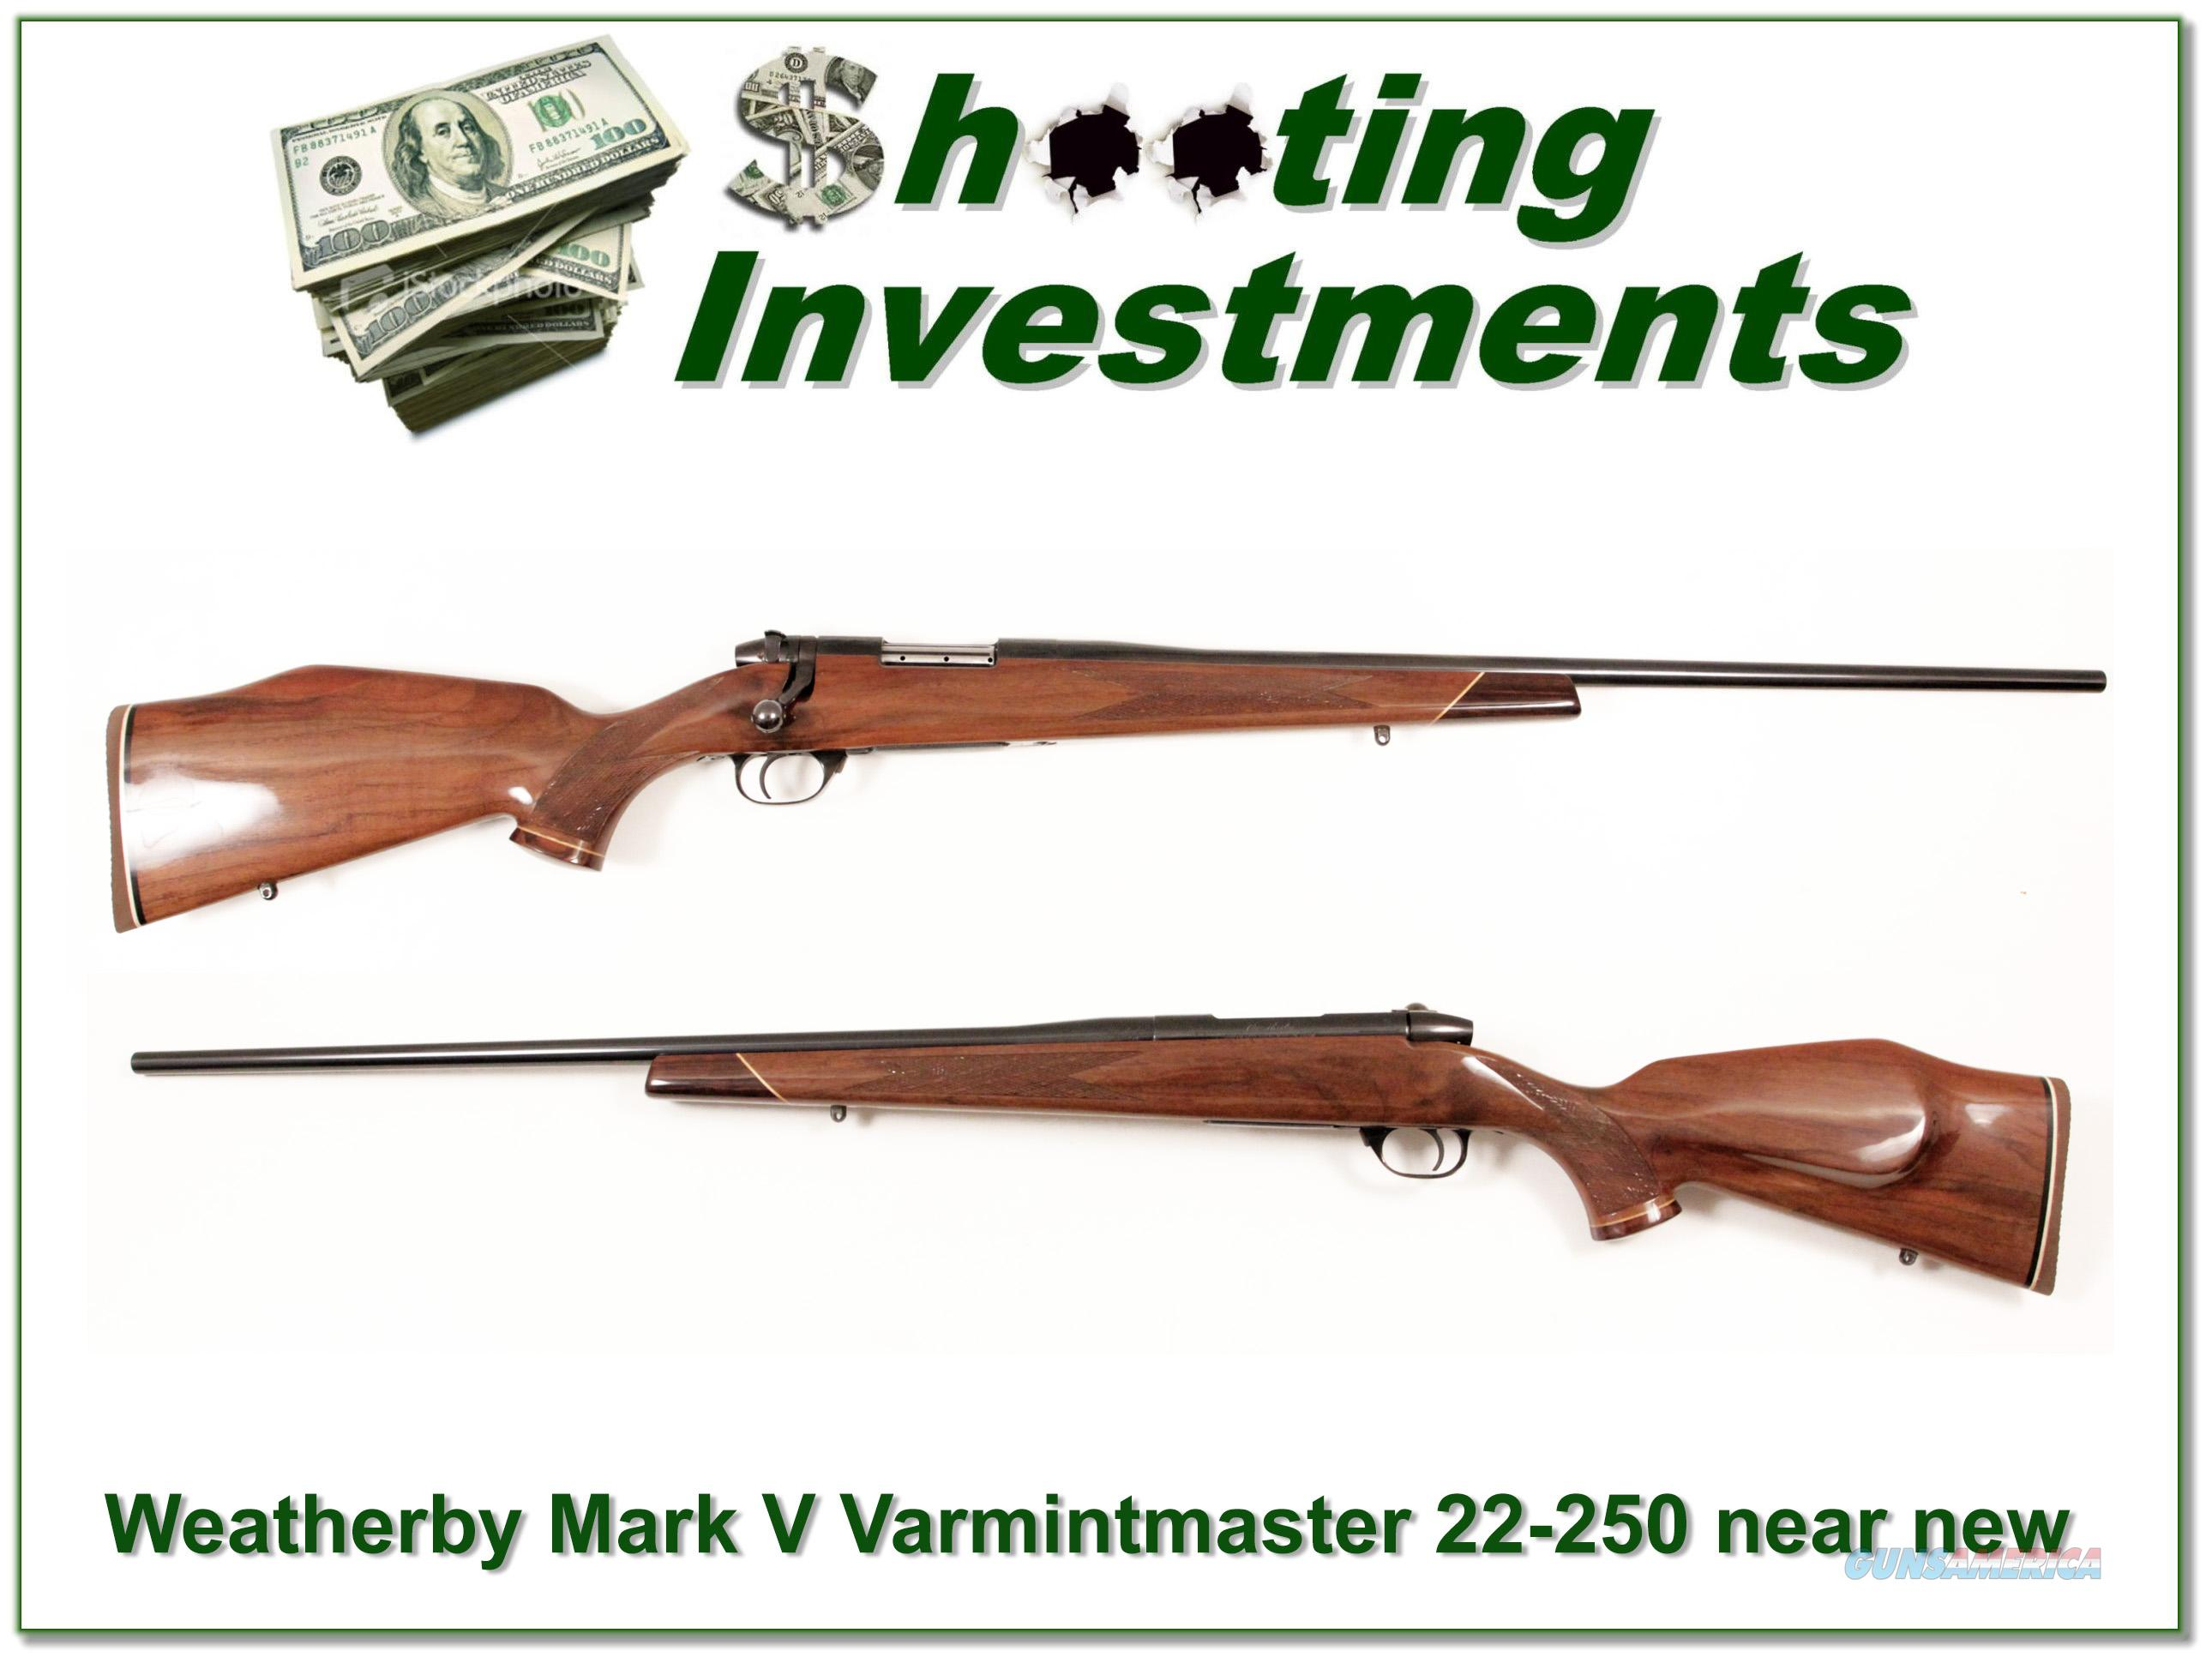 Weatherby Mark V Deluxe Varmintmaster 22-250 near new!  Guns > Rifles > Weatherby Rifles > Sporting